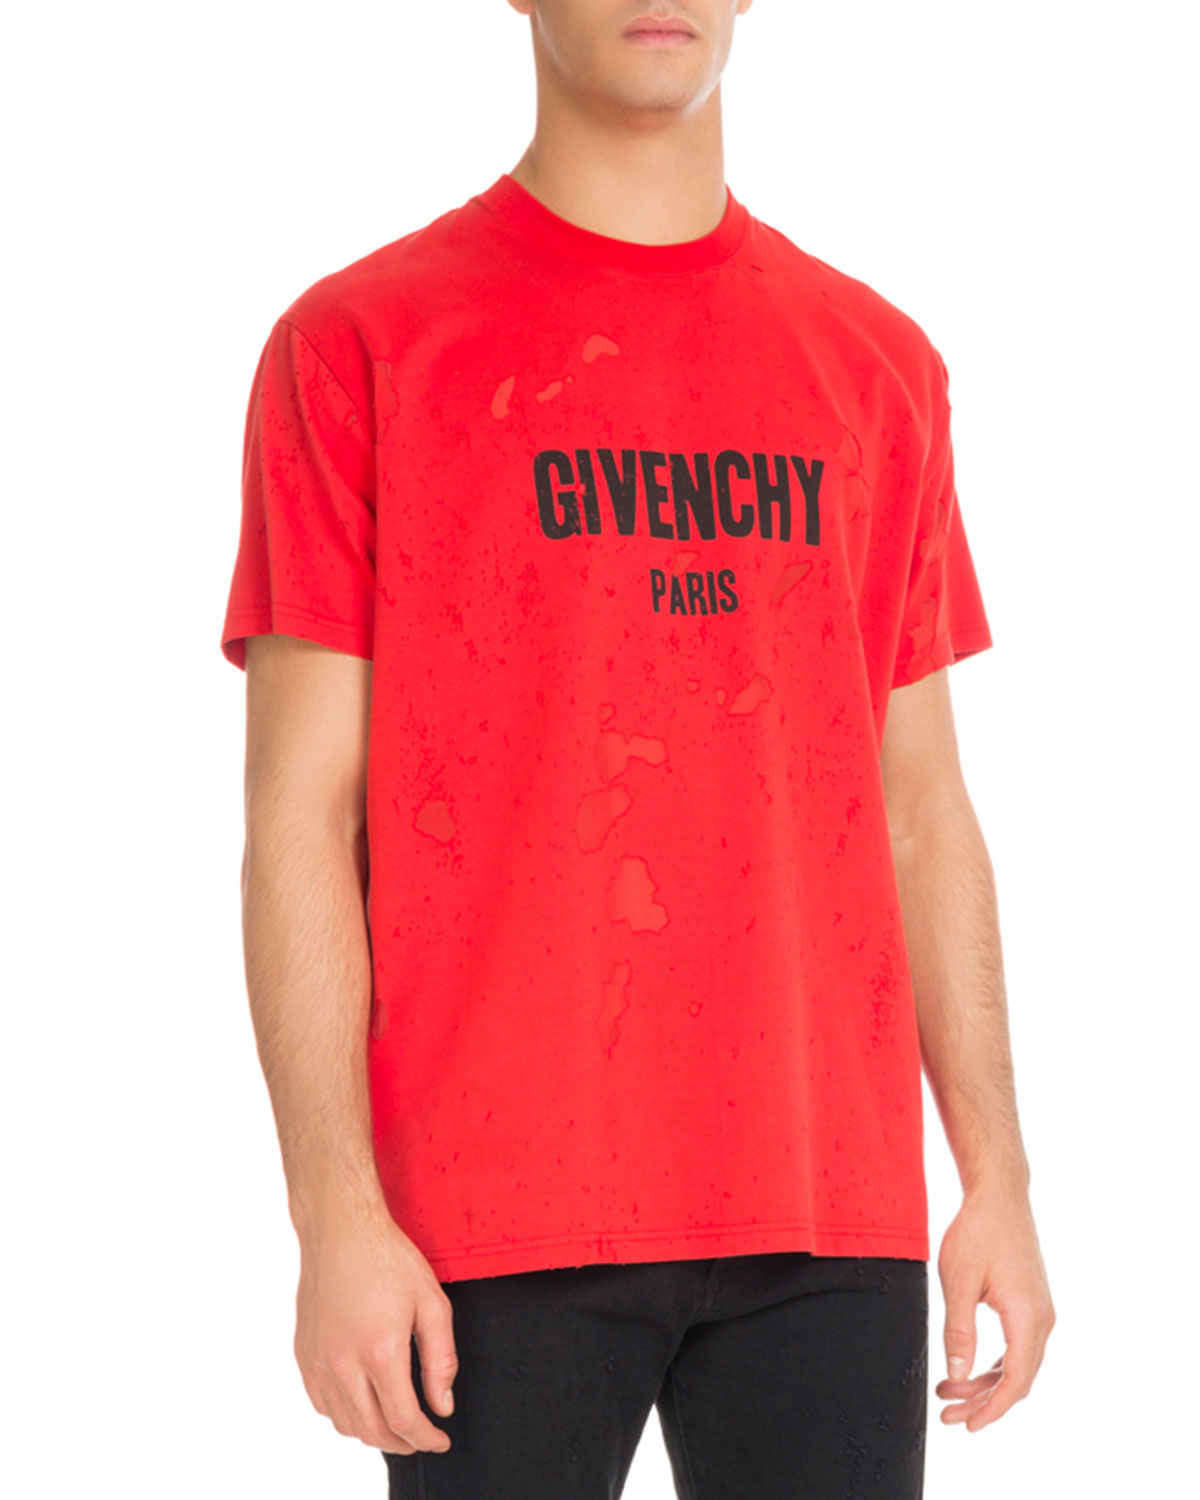 Texas Tech Classic Elegance Ladies Ring: Givenchy Columbian-Fit Distressed Logo T-Shirt, Red